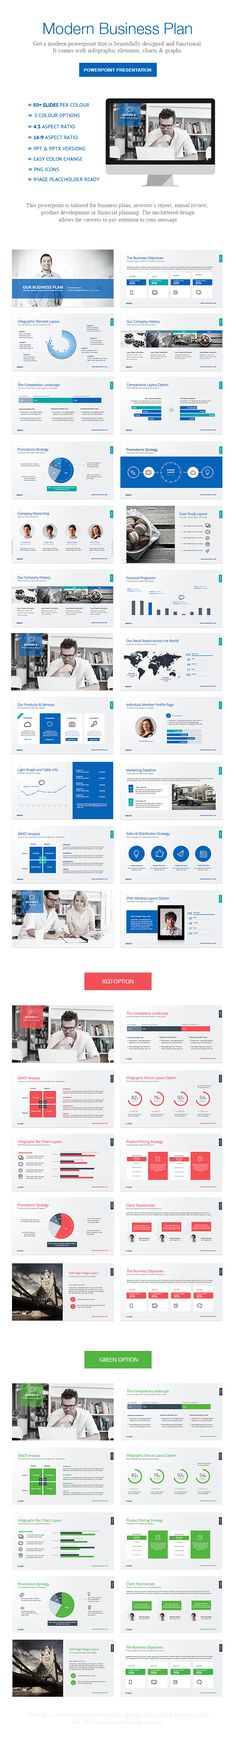 Business Plan Powerpoint Template  Business Planning And Flat Design